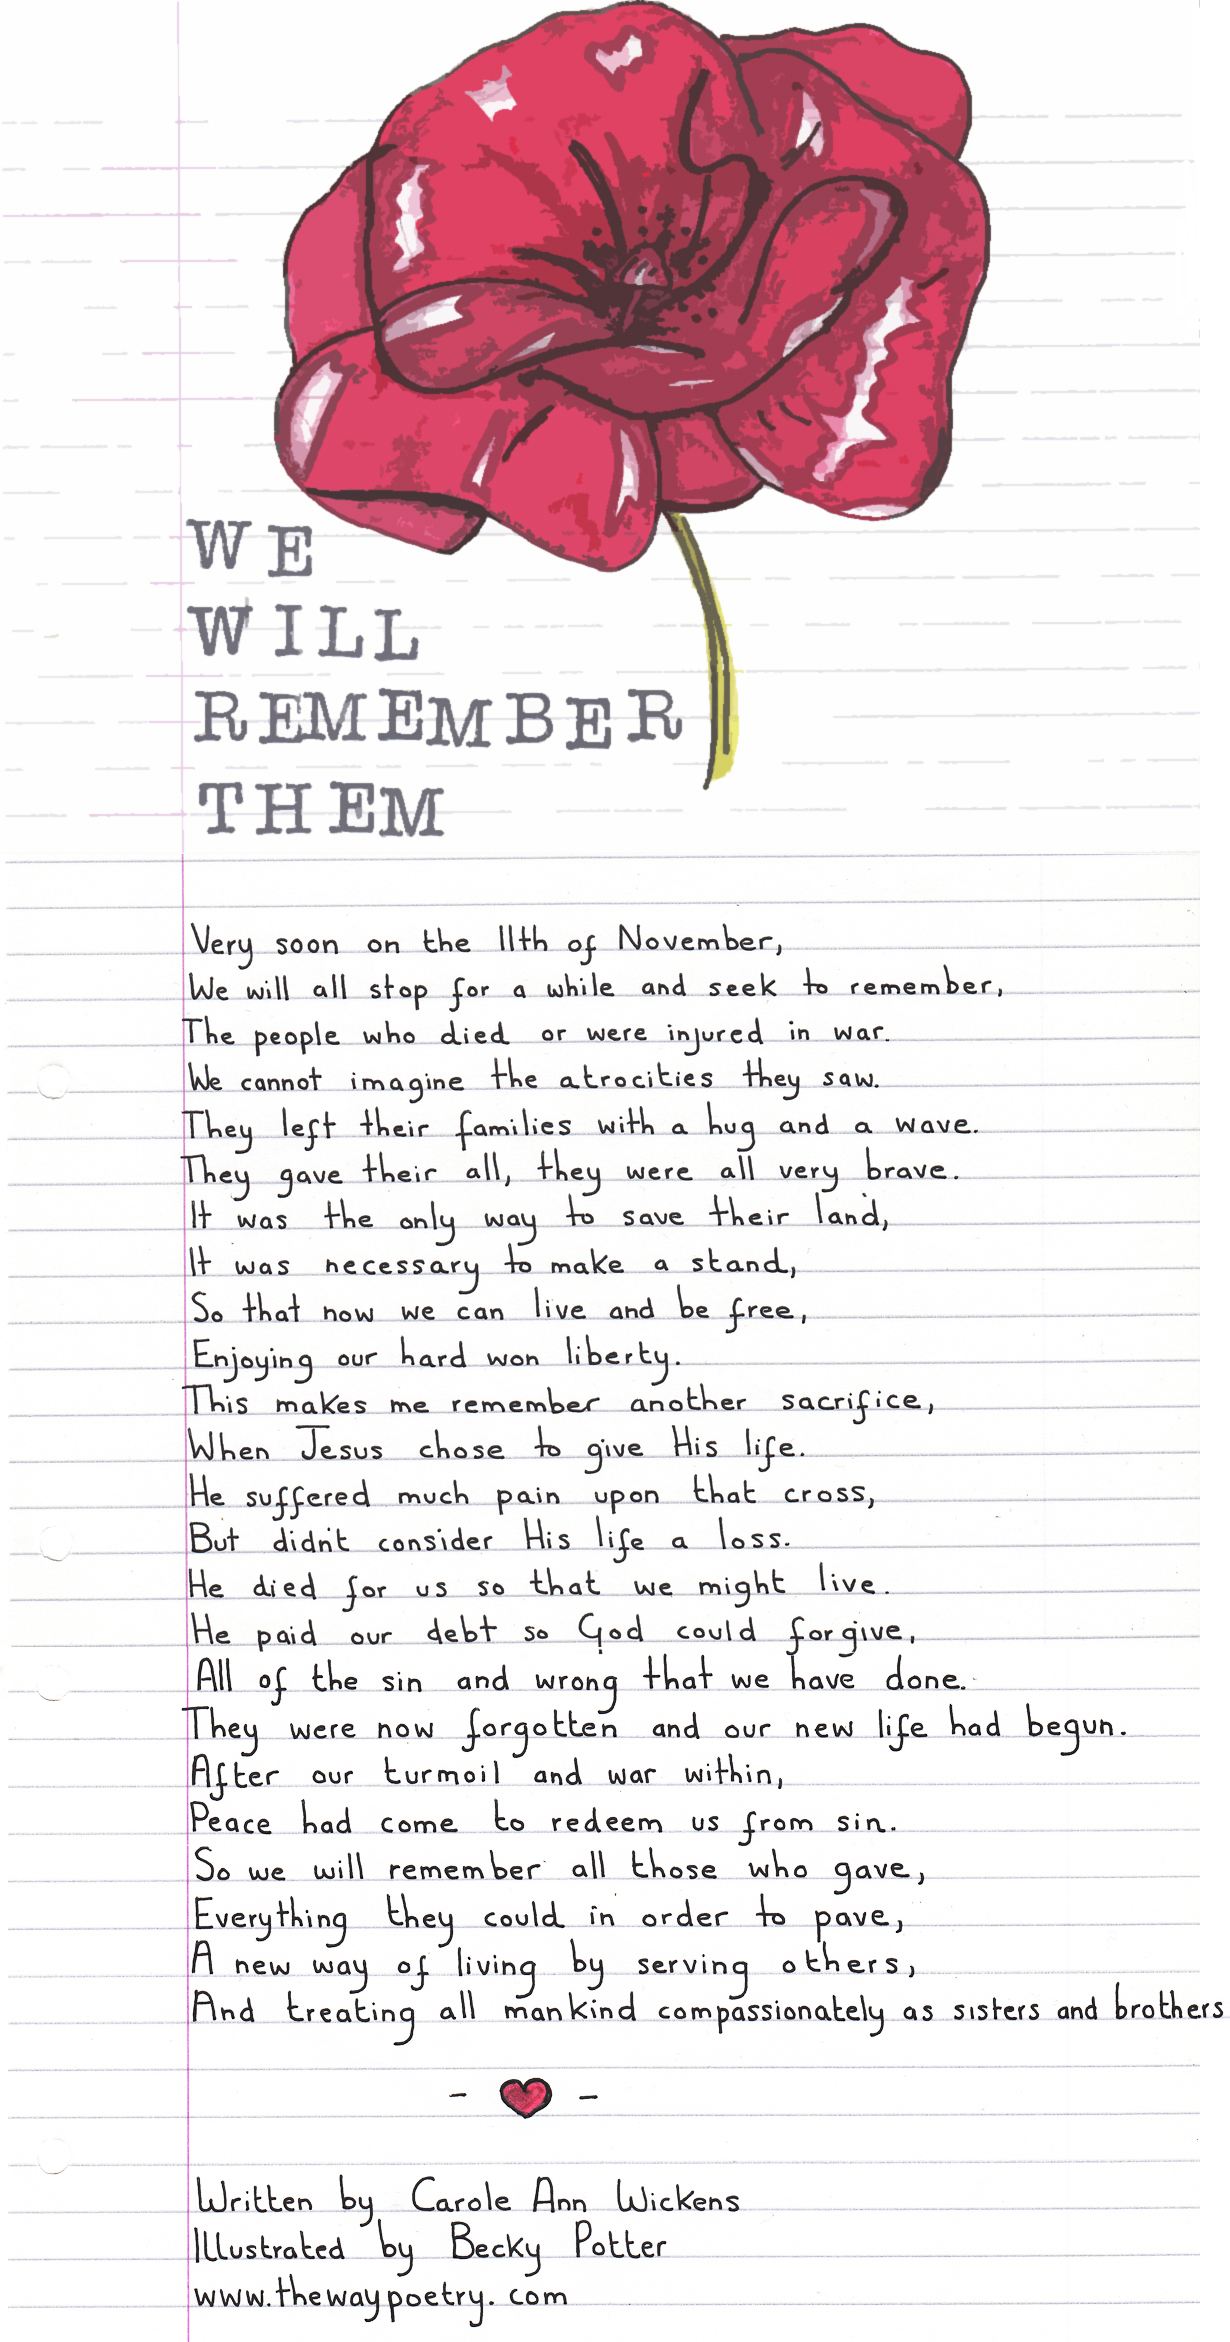 We Will Remember Them by Carole AnnWickens